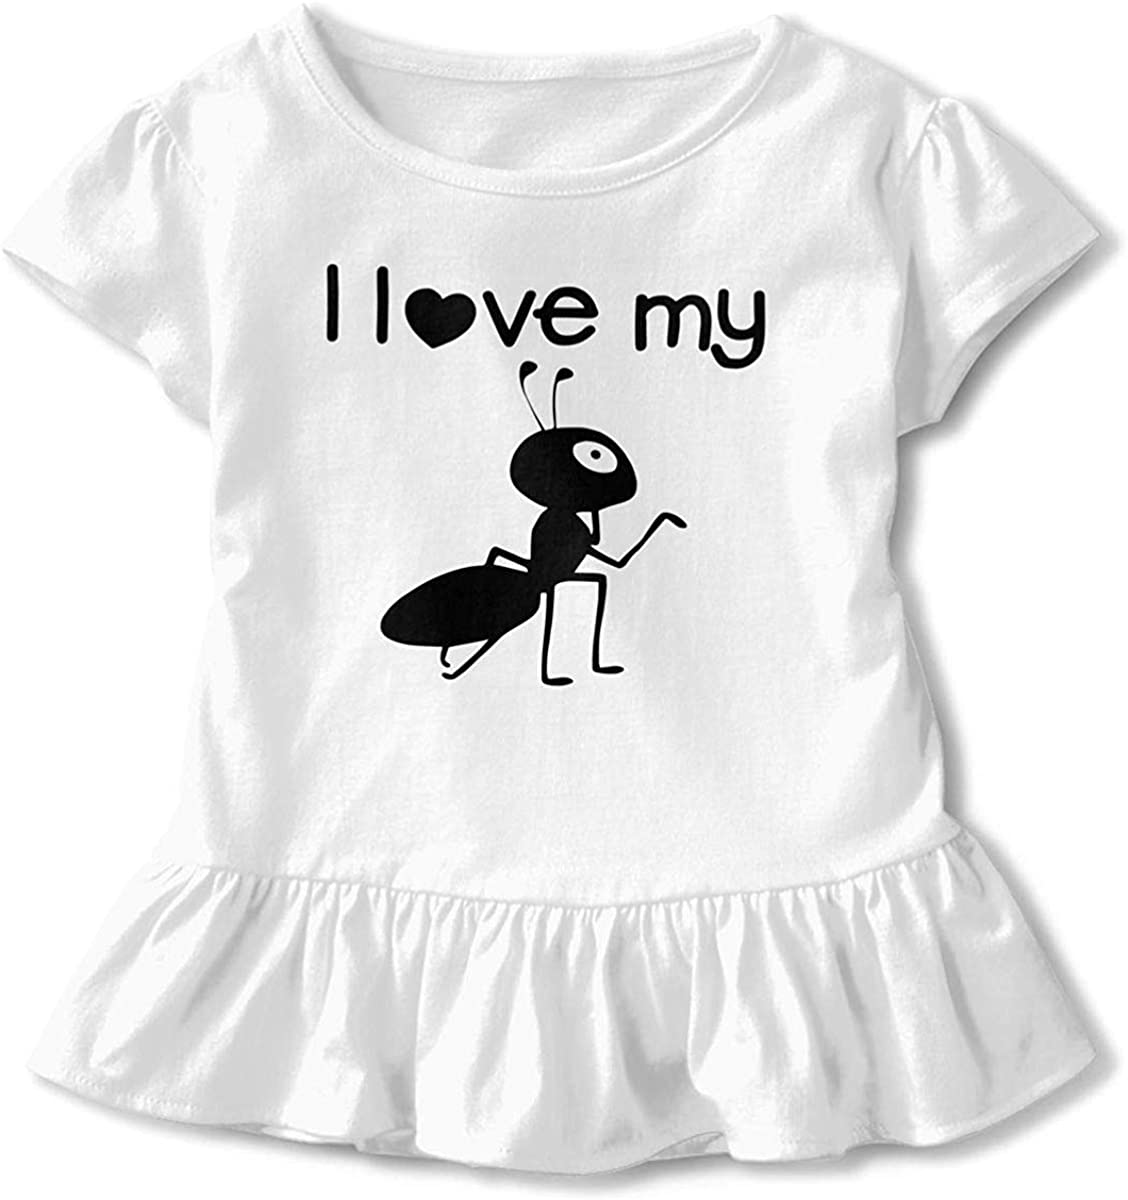 Toddler Baby Girl I Love My Aunt Funny Short Sleeve Cotton T Shirts Basic Tops Tee Clothes